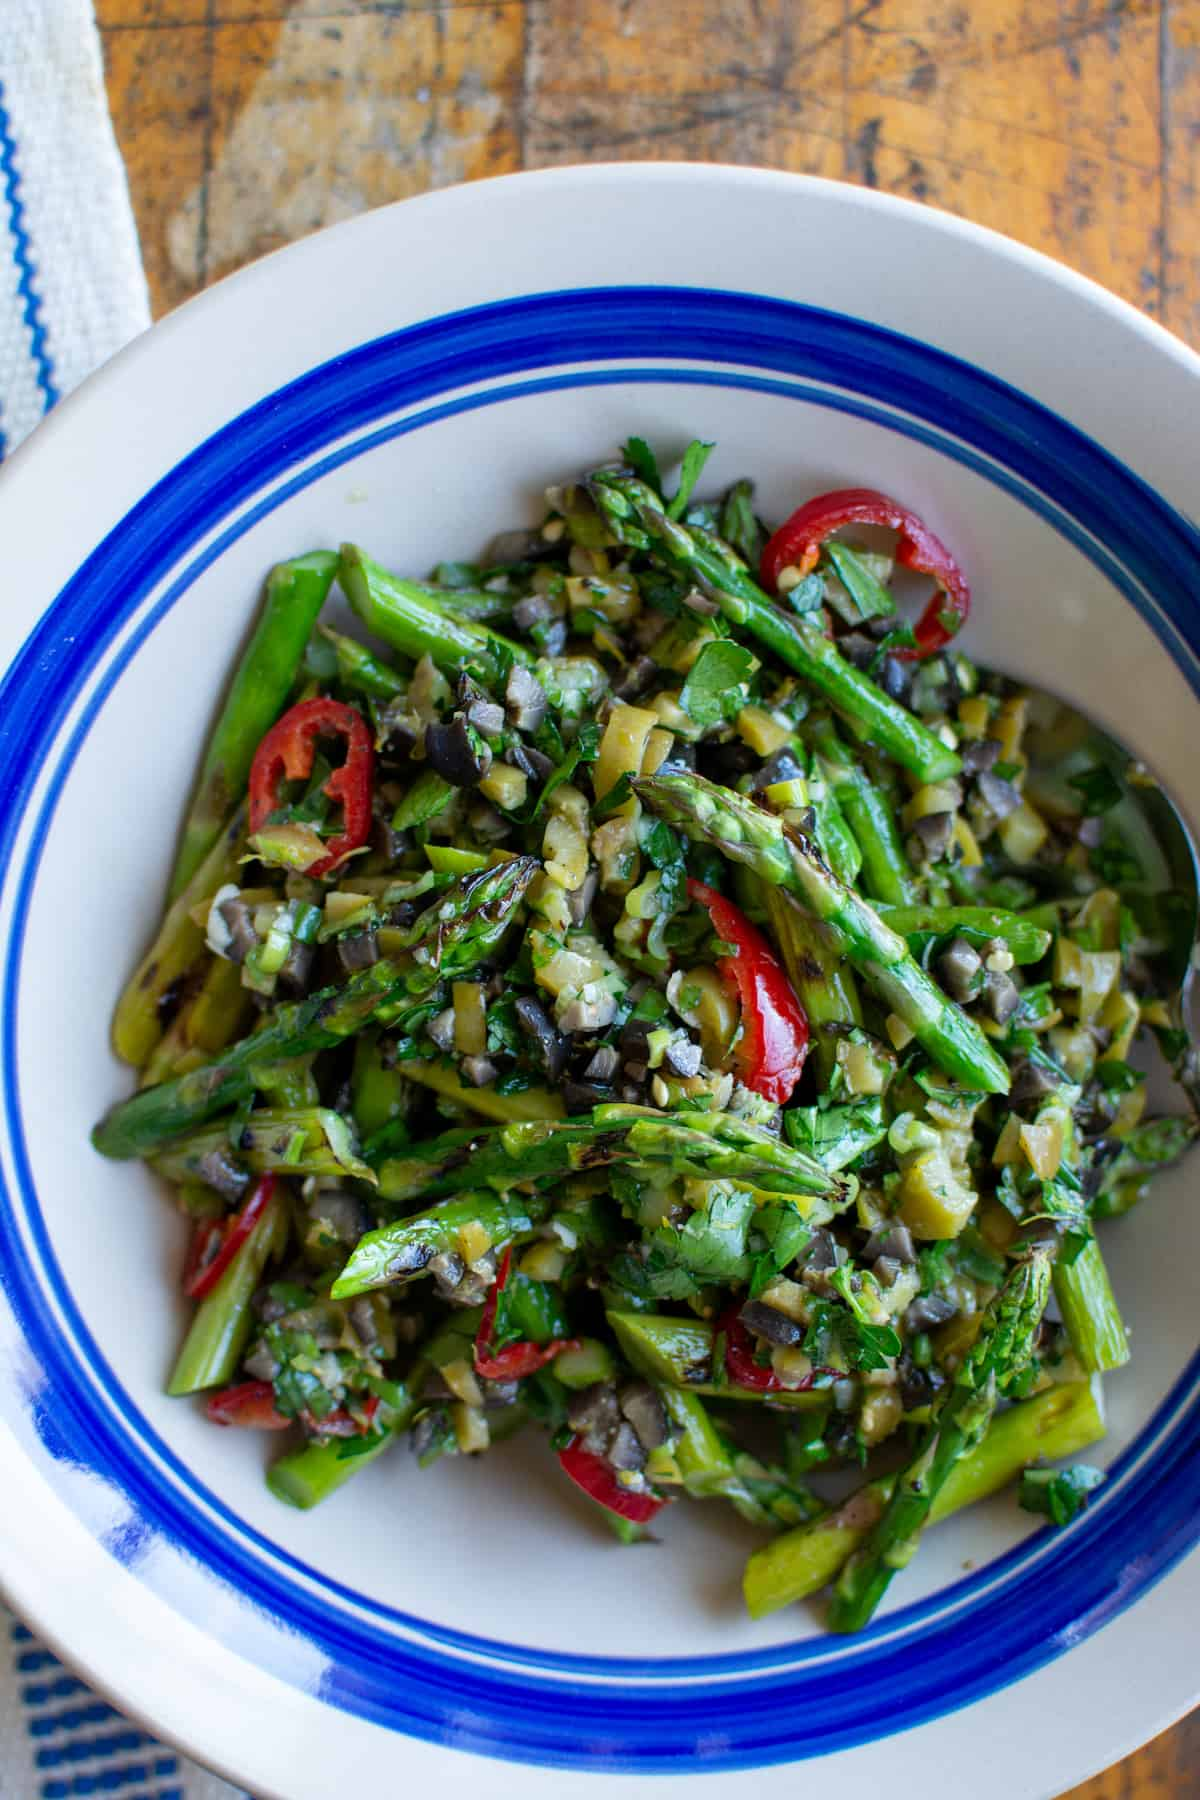 Overhead image of asparagus salad in a white bowl with a blue stripe sitting on a wood table.